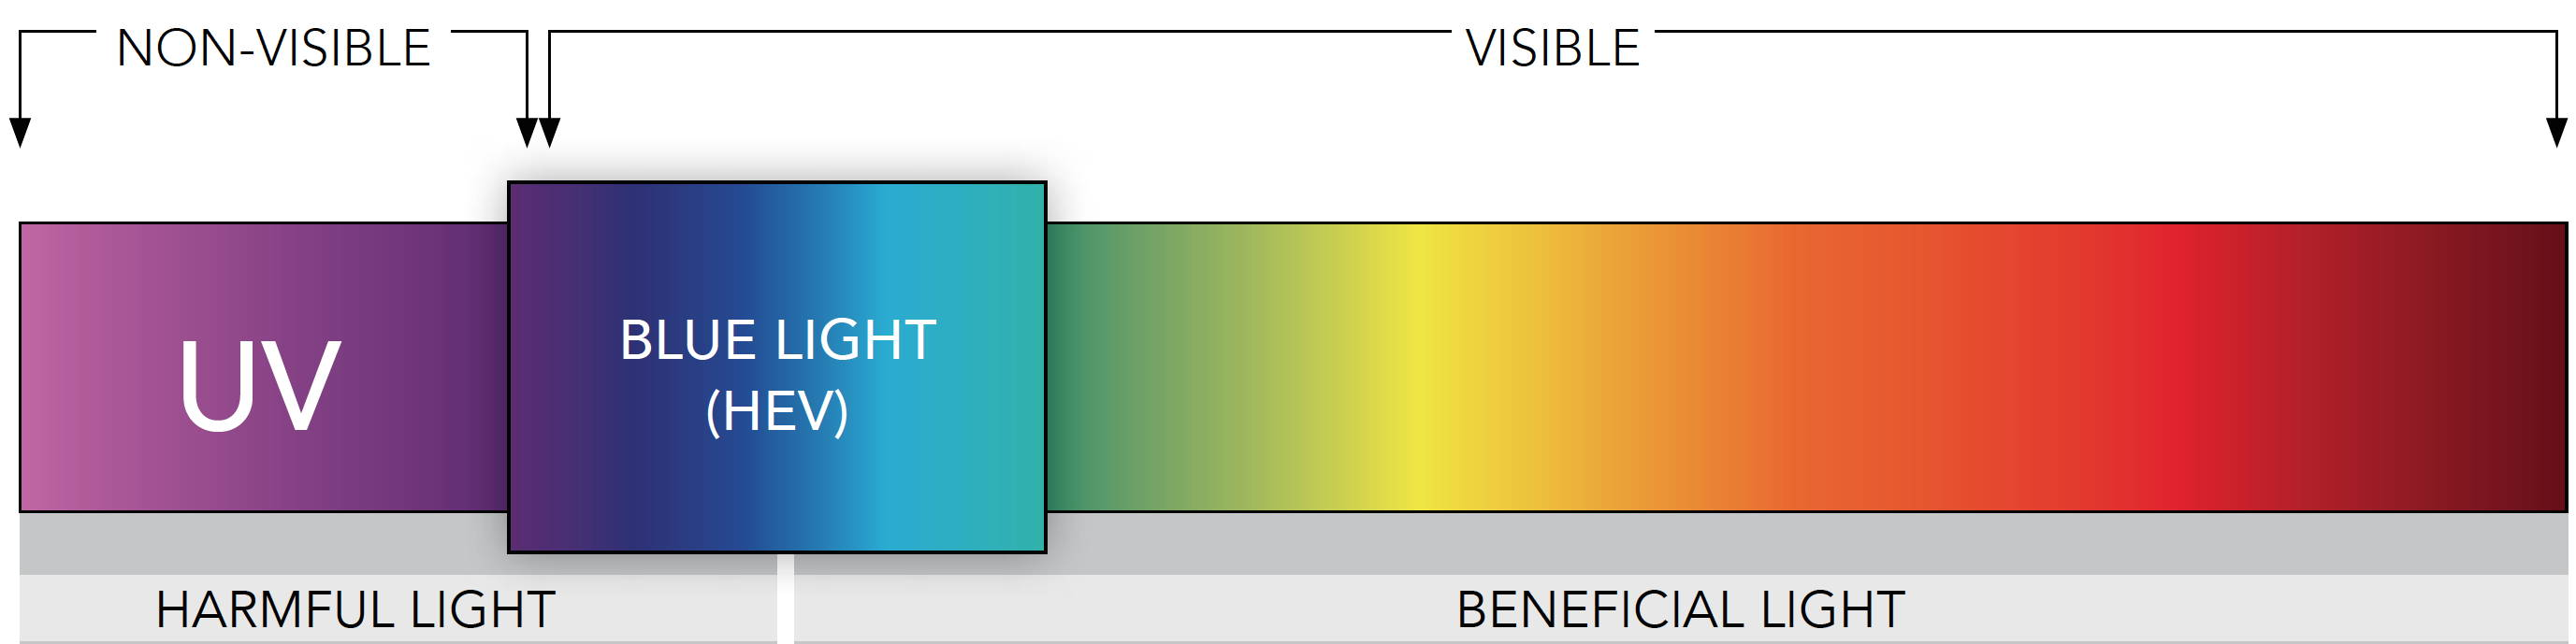 computer vision syndrome prevention